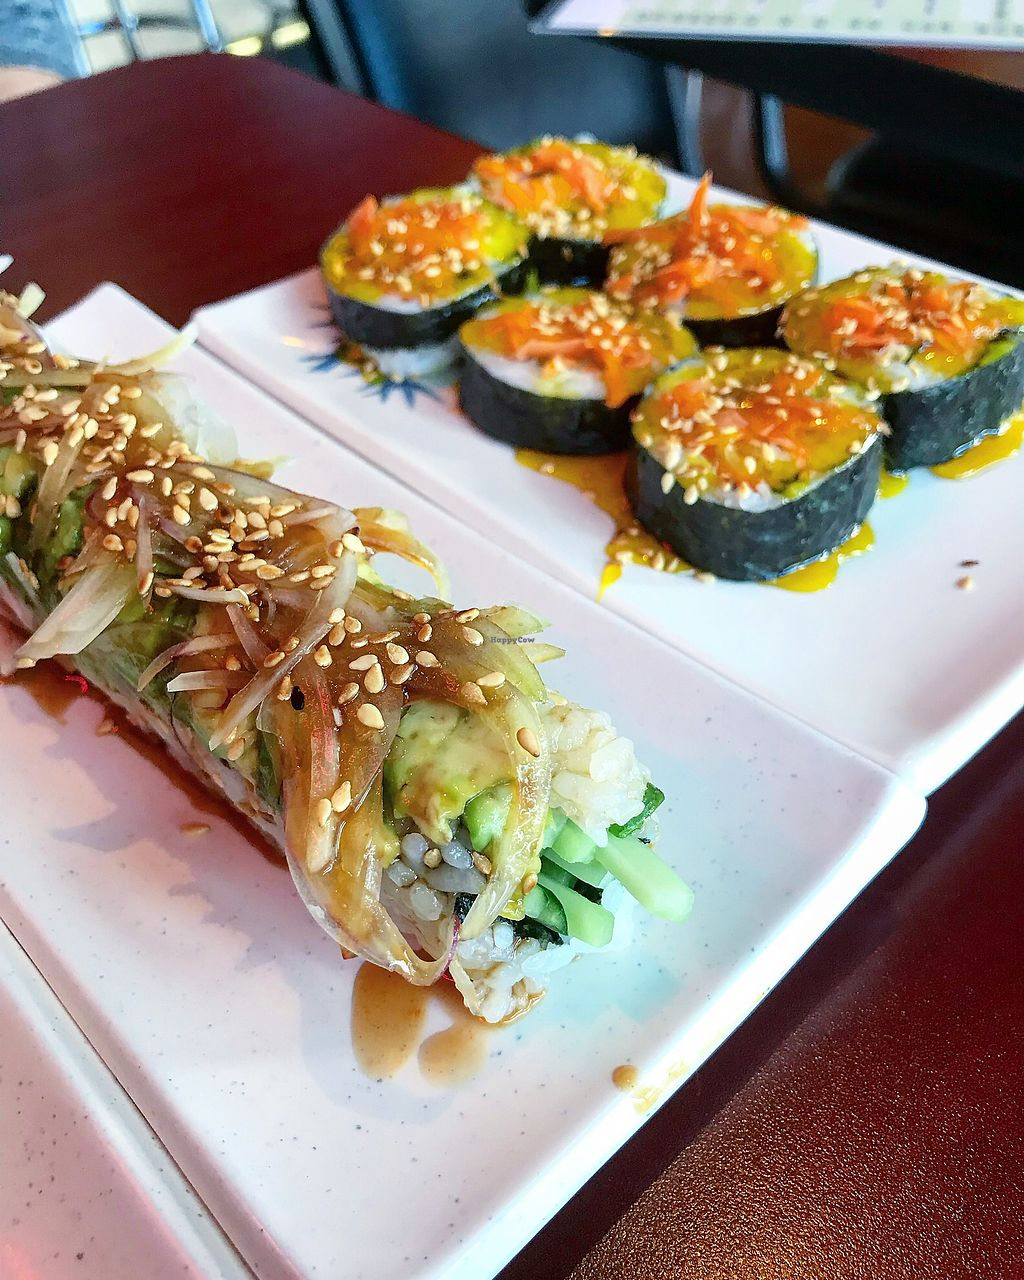 "Photo of Sushi Lover  by <a href=""/members/profile/MusicalVeggie"">MusicalVeggie</a> <br/>Clovis and lemon roll! <br/> February 19, 2018  - <a href='/contact/abuse/image/87860/361175'>Report</a>"